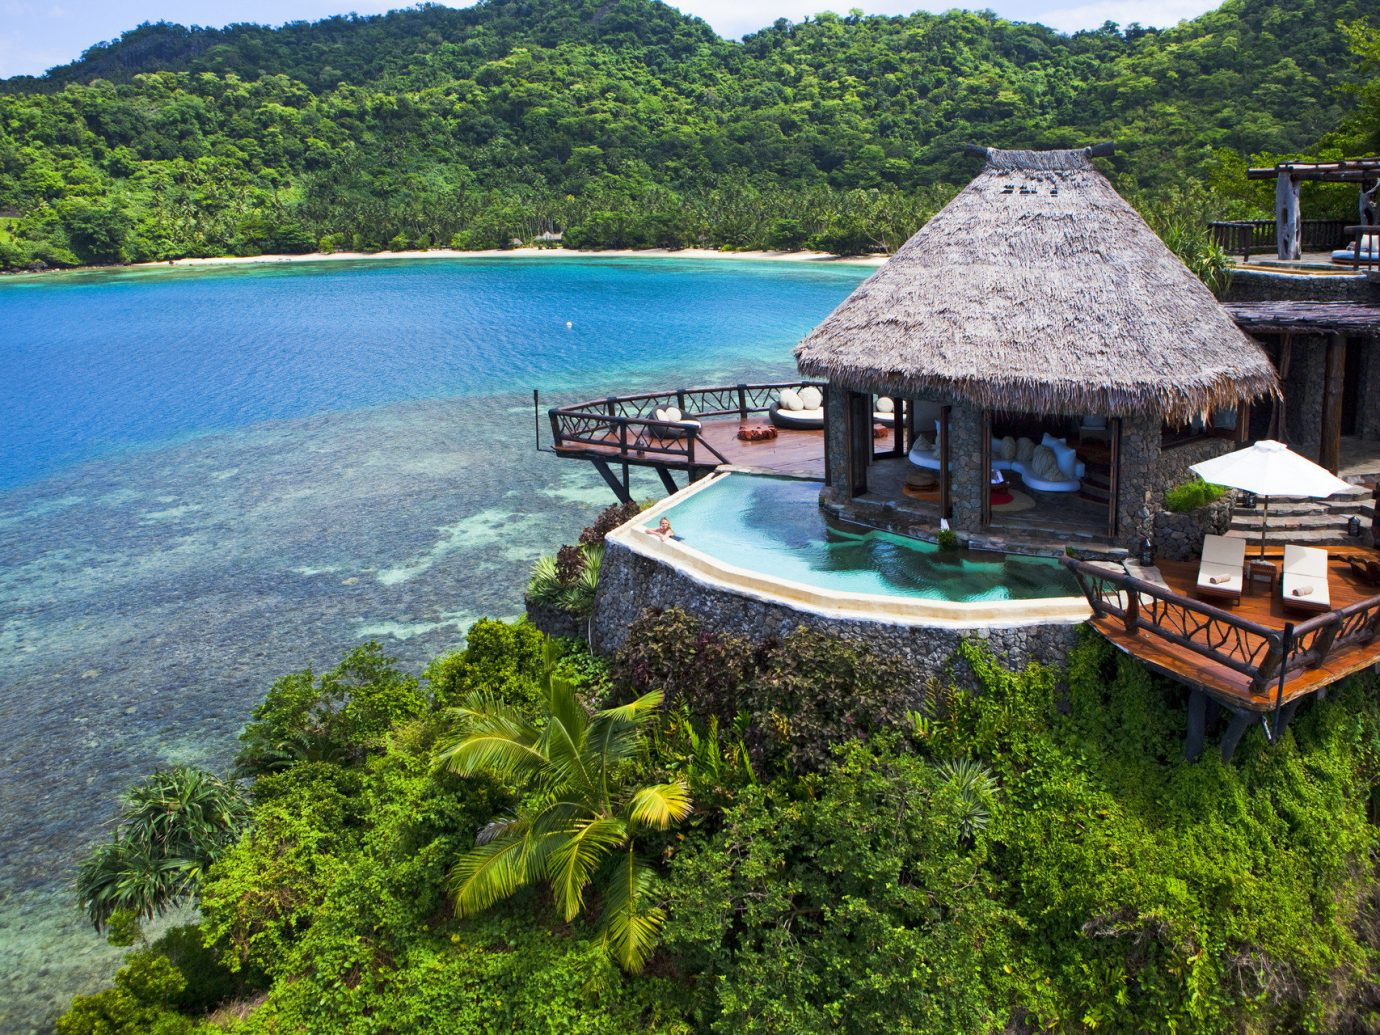 Beach clear water Greenery Hotels huts isolation Luxury Ocean private private pool quaint remote serene Tropical turquoise outdoor water sky Nature vacation tourism Sea Coast bay estate Resort Island Lake surrounded